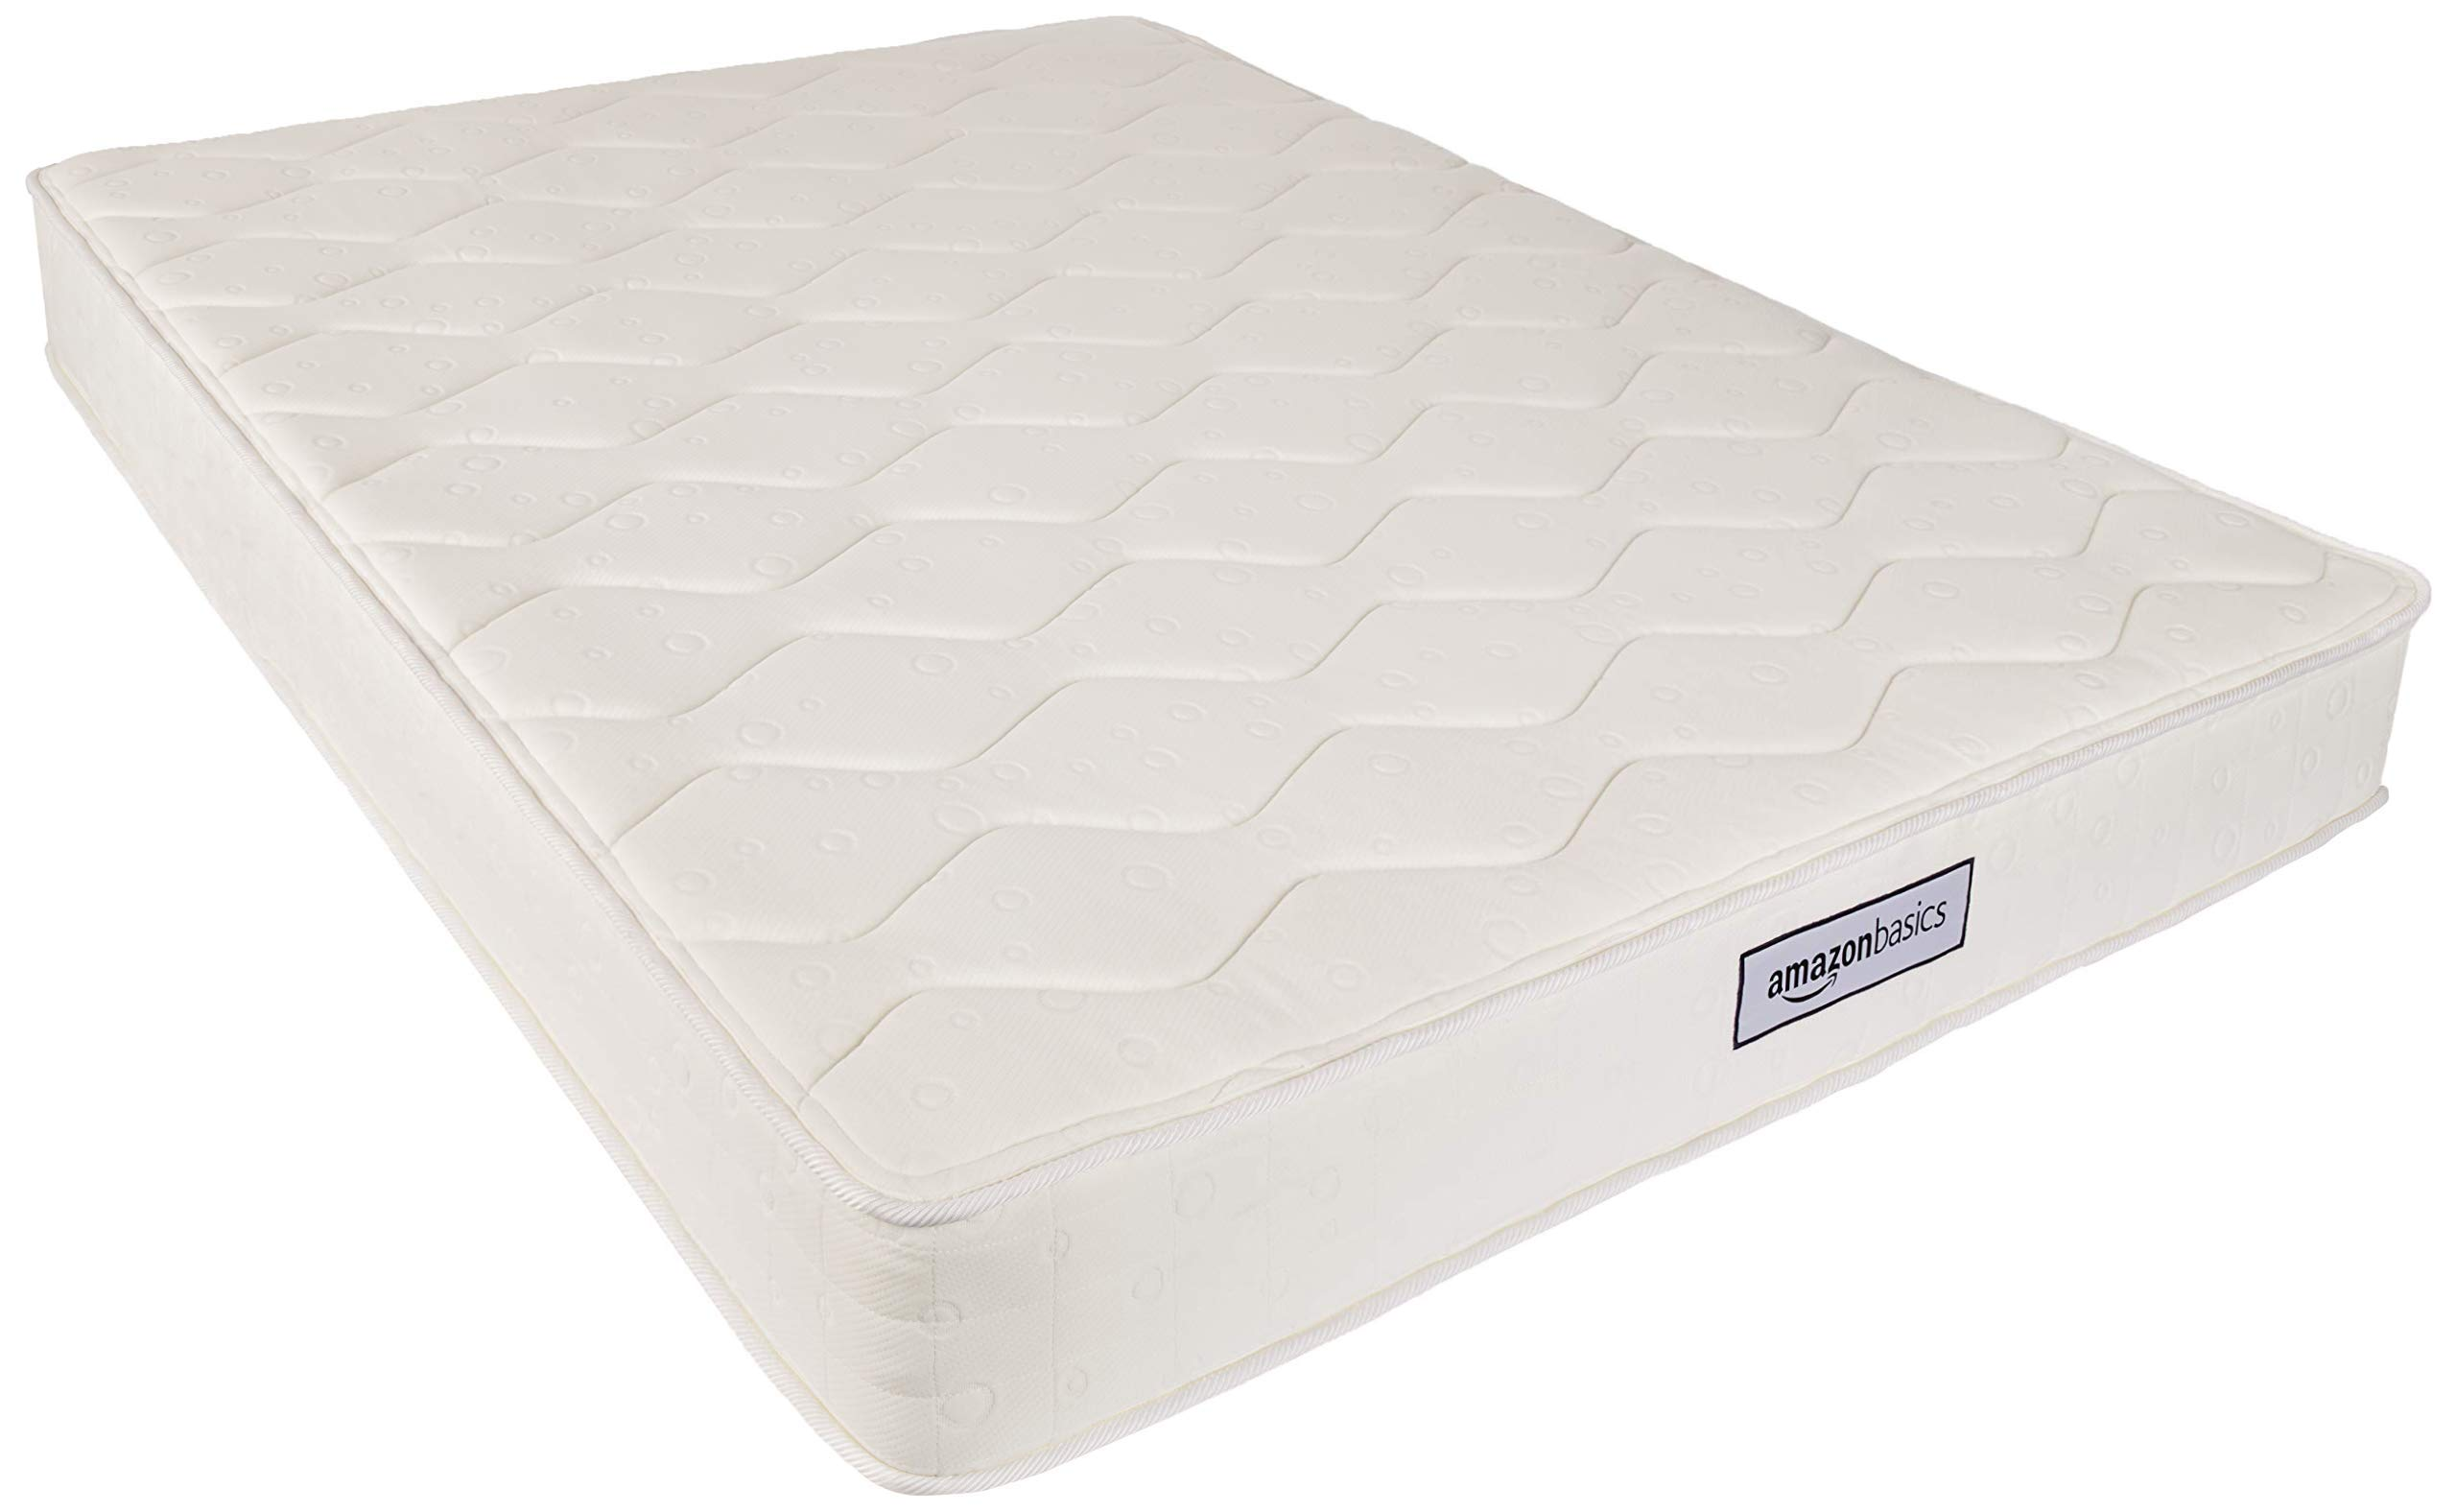 AmazonBasics Coil Mattress in a Box - Features Individual Pocket Spring for Motion Isolation, High-Density CertiPUR-US Certified Foam Layer - 8-Inch, Queen by AmazonBasics (Image #2)